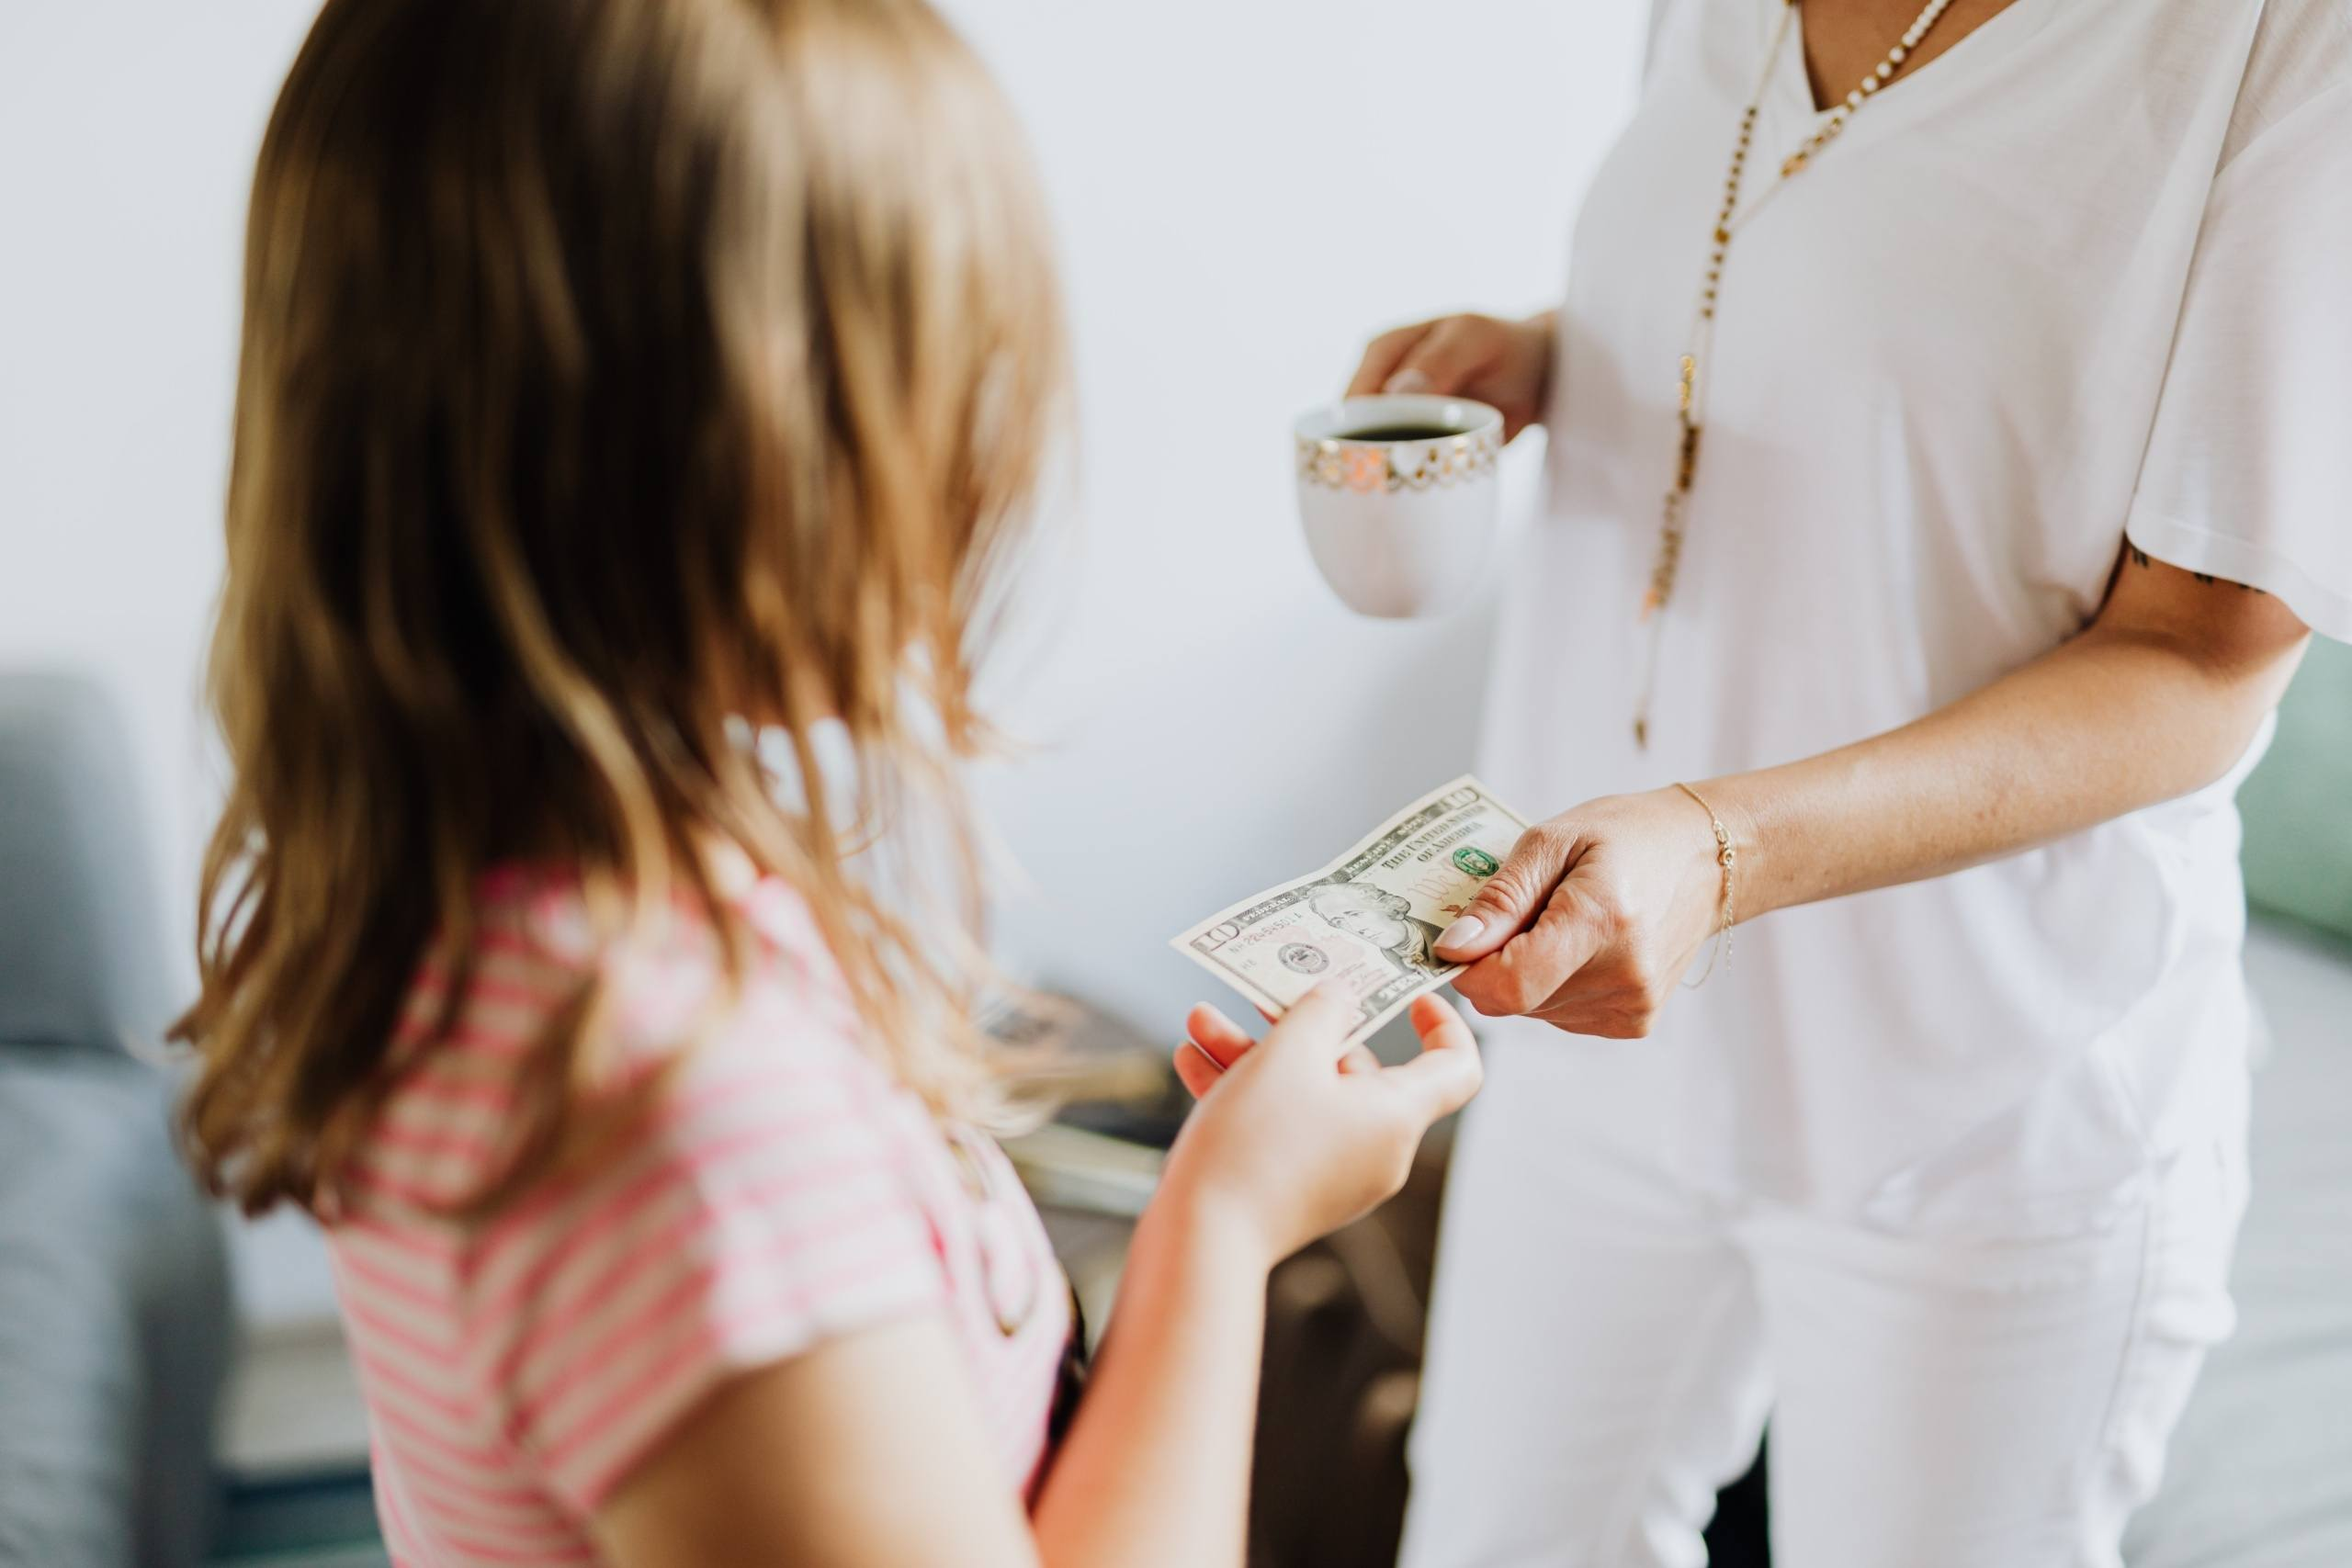 mother teaches young girl value of money - Teach Children The Value Of Money